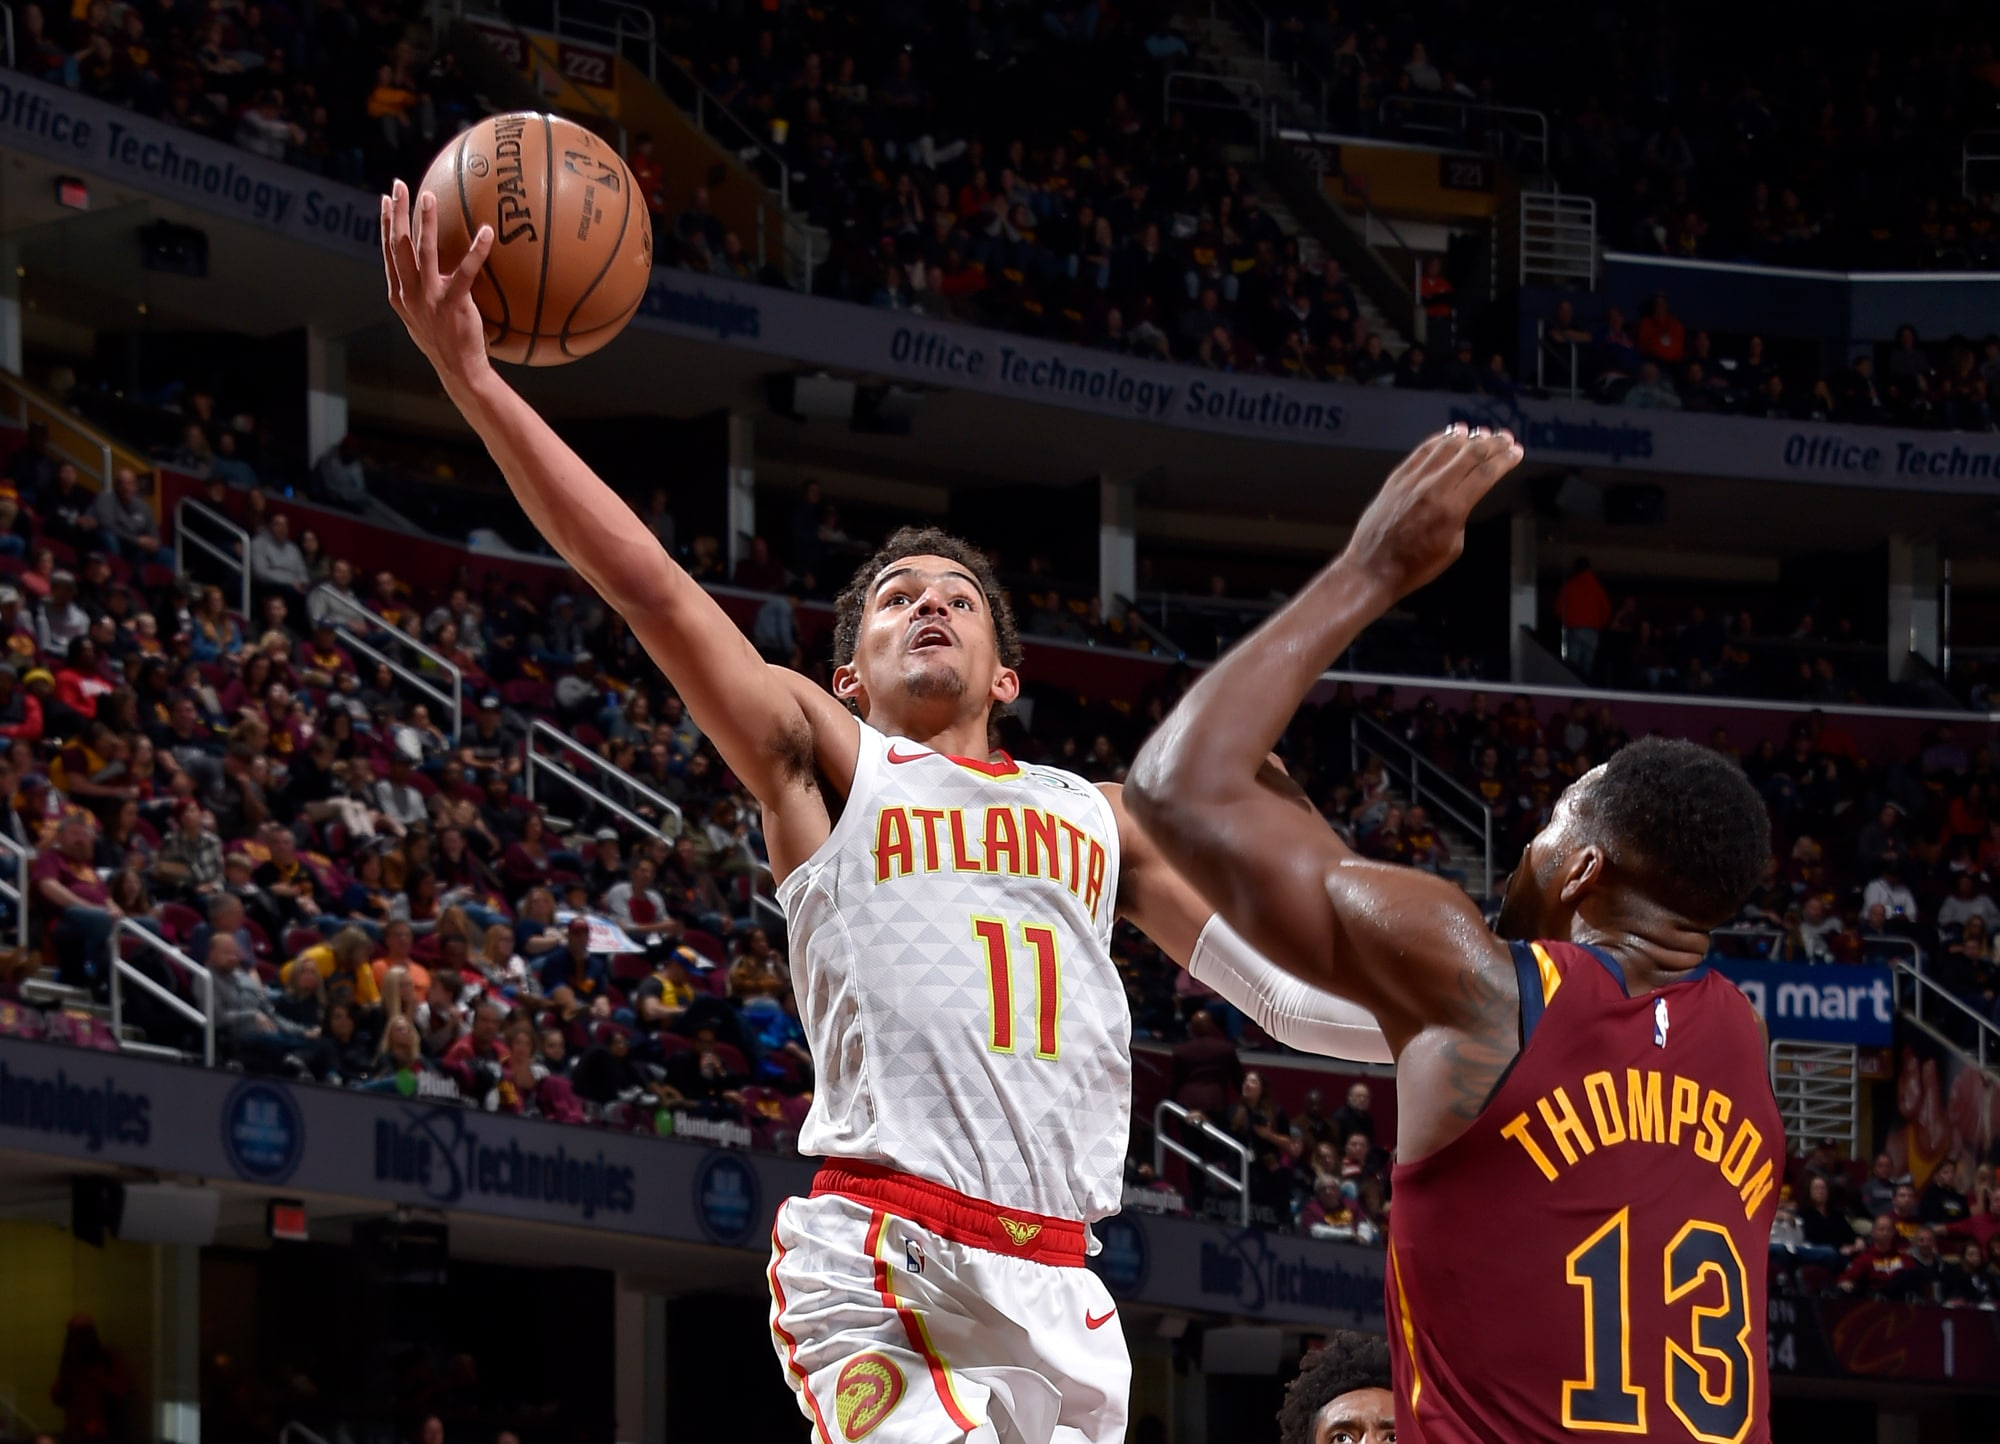 Trae Young scored 35 points and handed out 11 assists in the Hawks win. (David Liam Kyle/NBAE/Getty Images)